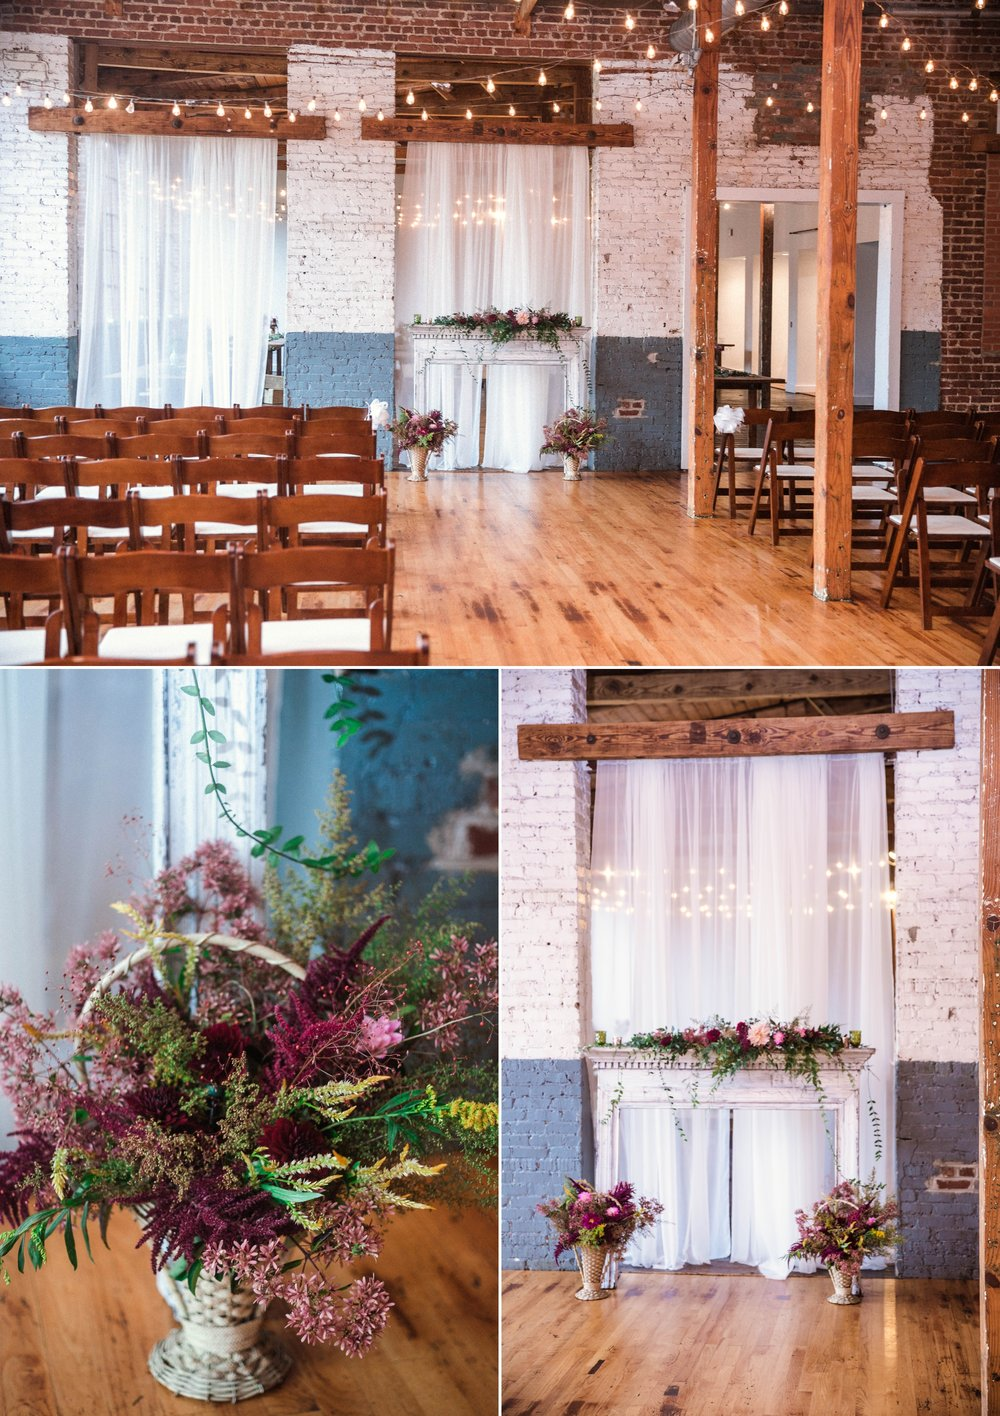 Romantic Industrial Ceremony with a fireplace mantel as the altar - Brittany + Douglas - Forest Hall at Chatham Mills in Pittsboro, NC - Raleigh North Carolina Wedding Photographer